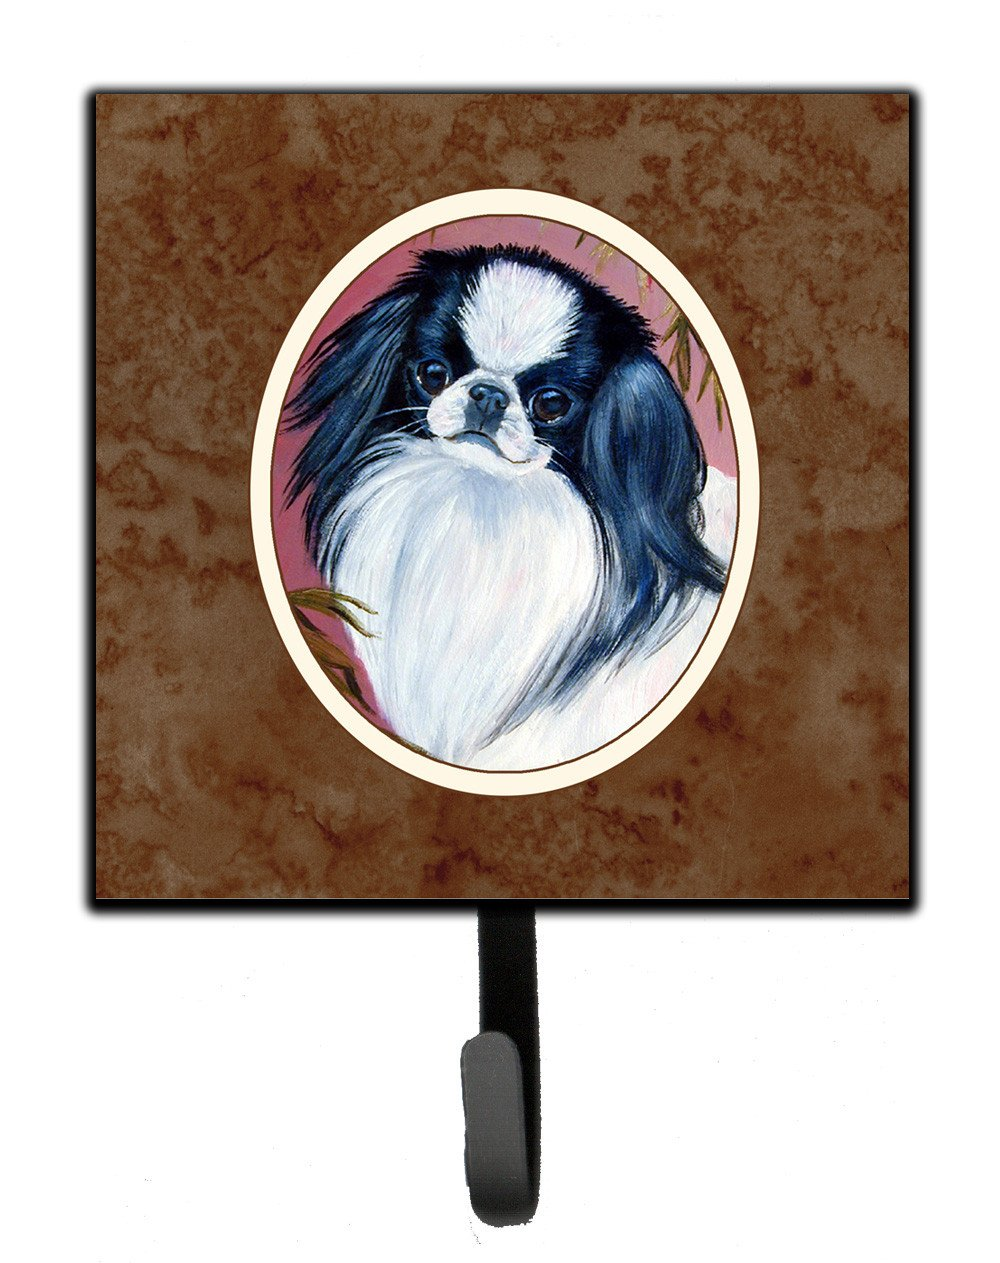 Japanese Chin Leash or Key Holder 7149SH4 by Caroline's Treasures